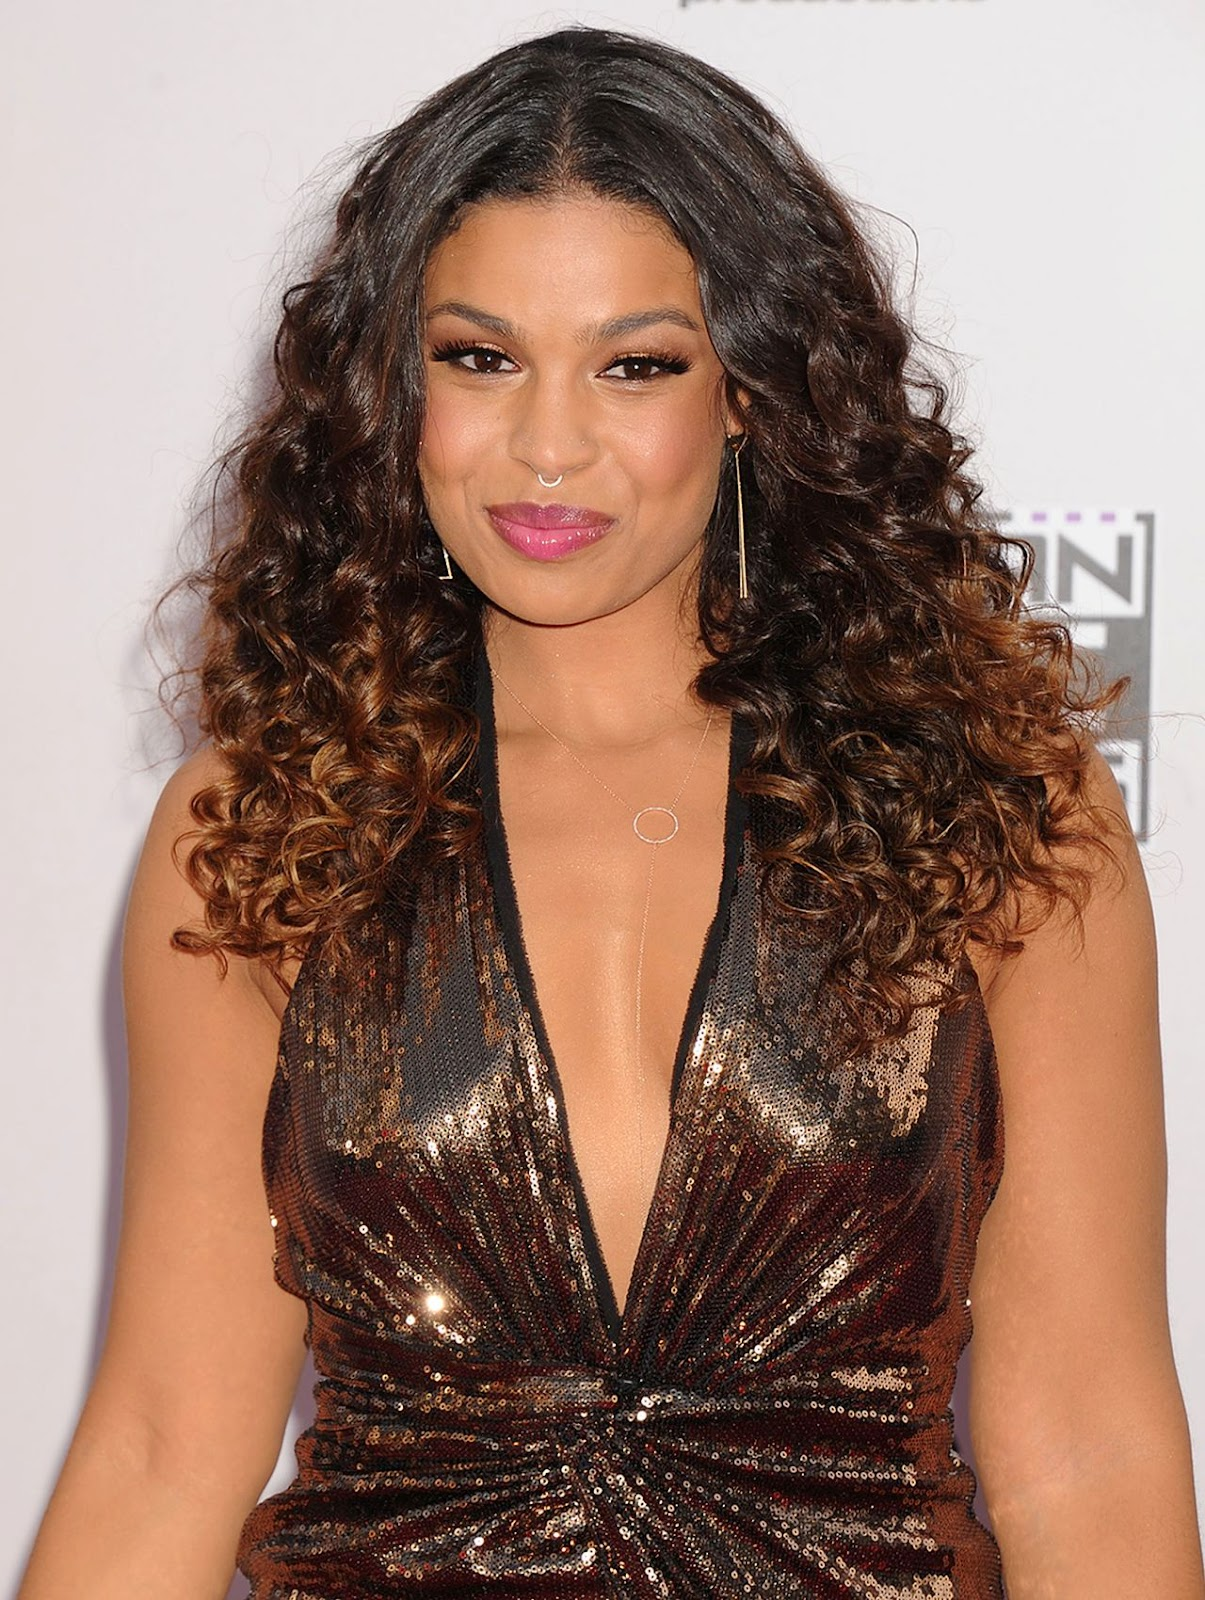 Jordin Sparks at 2014 American Music Awards in Los Angeles